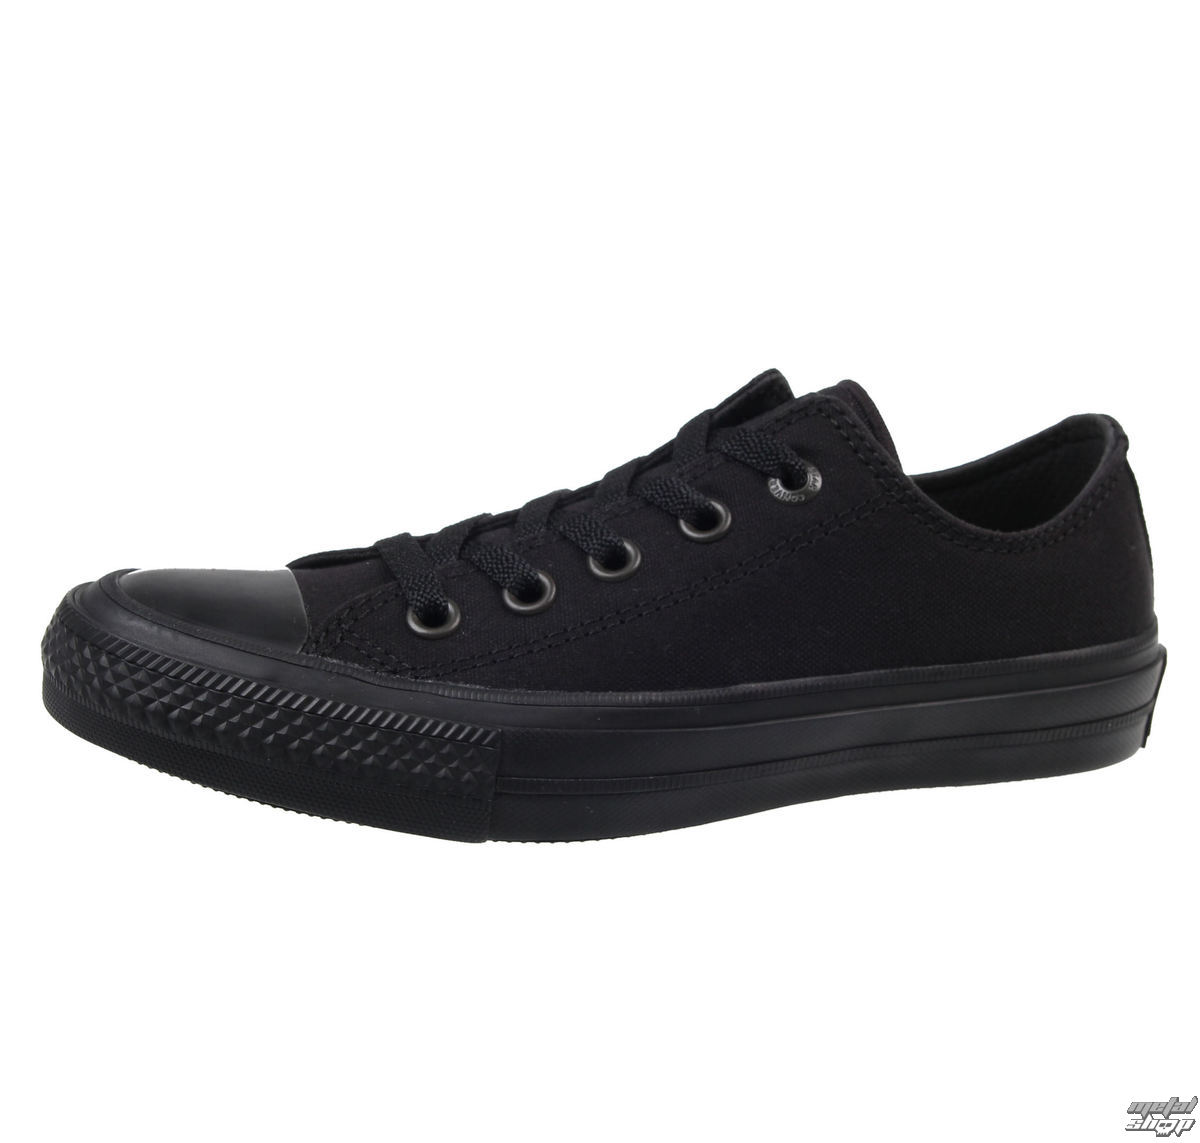 boty CONVERSE - Chuck Taylor All Star II - BLACK - C151223